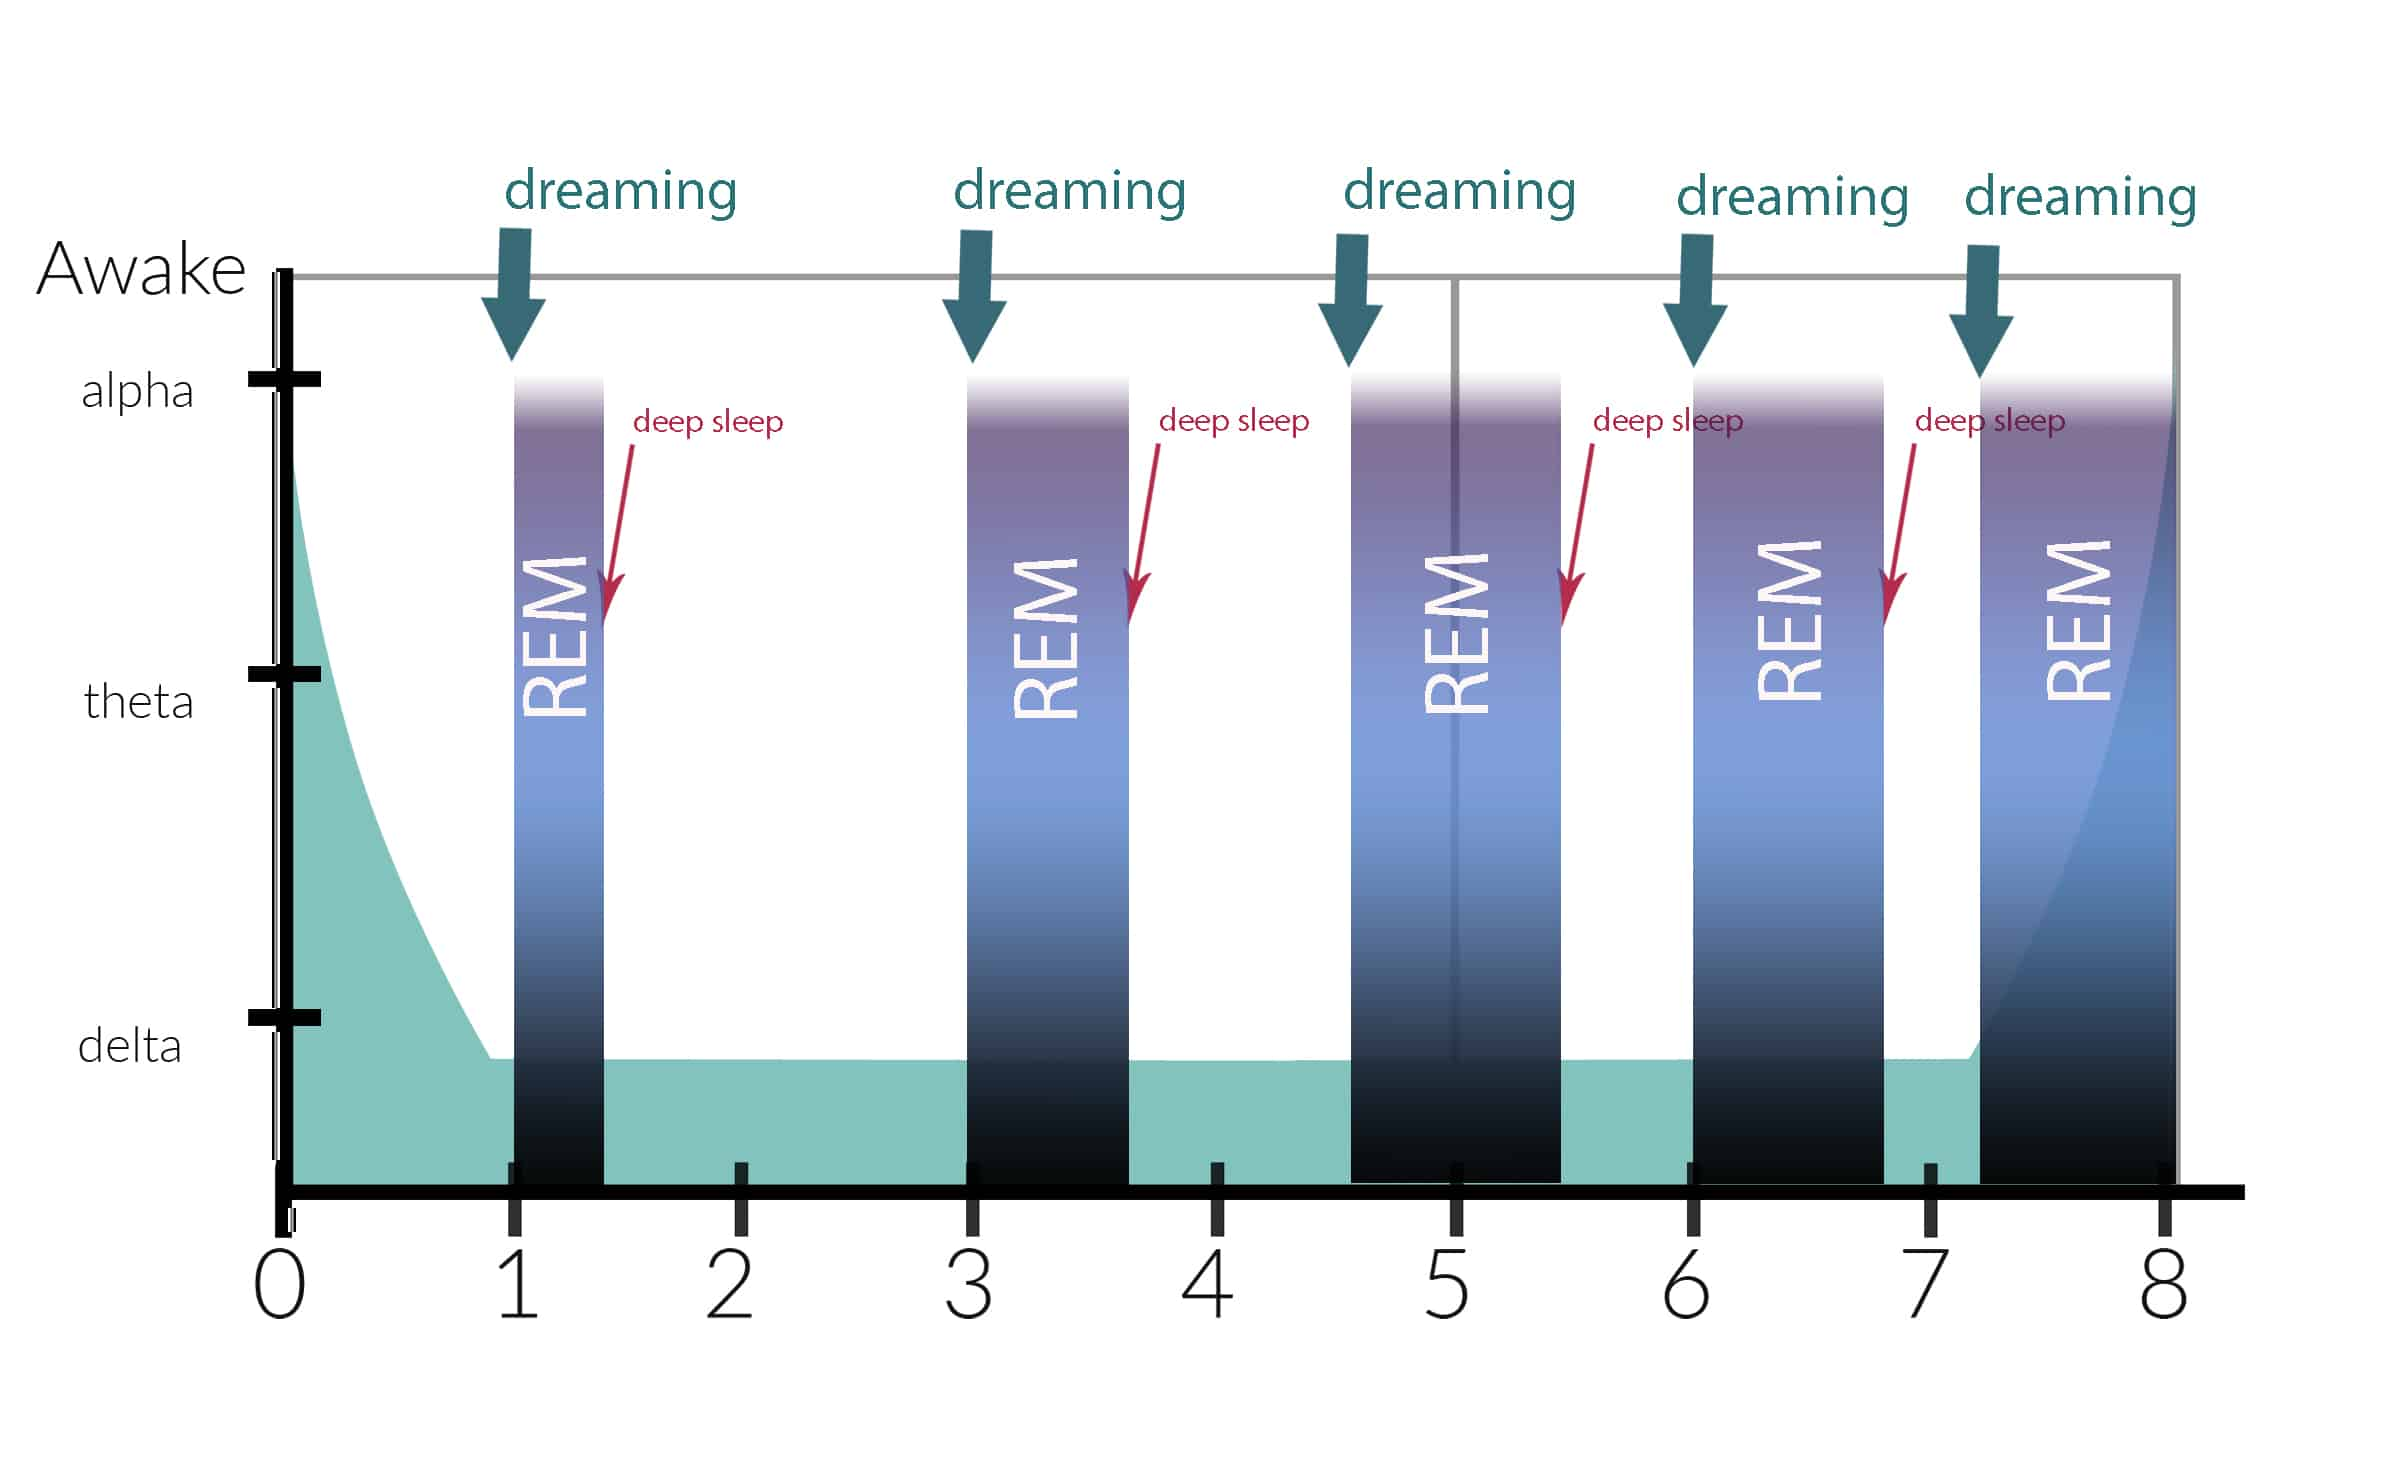 How to Lucid Dream: Tips, Resources and Music to Help You